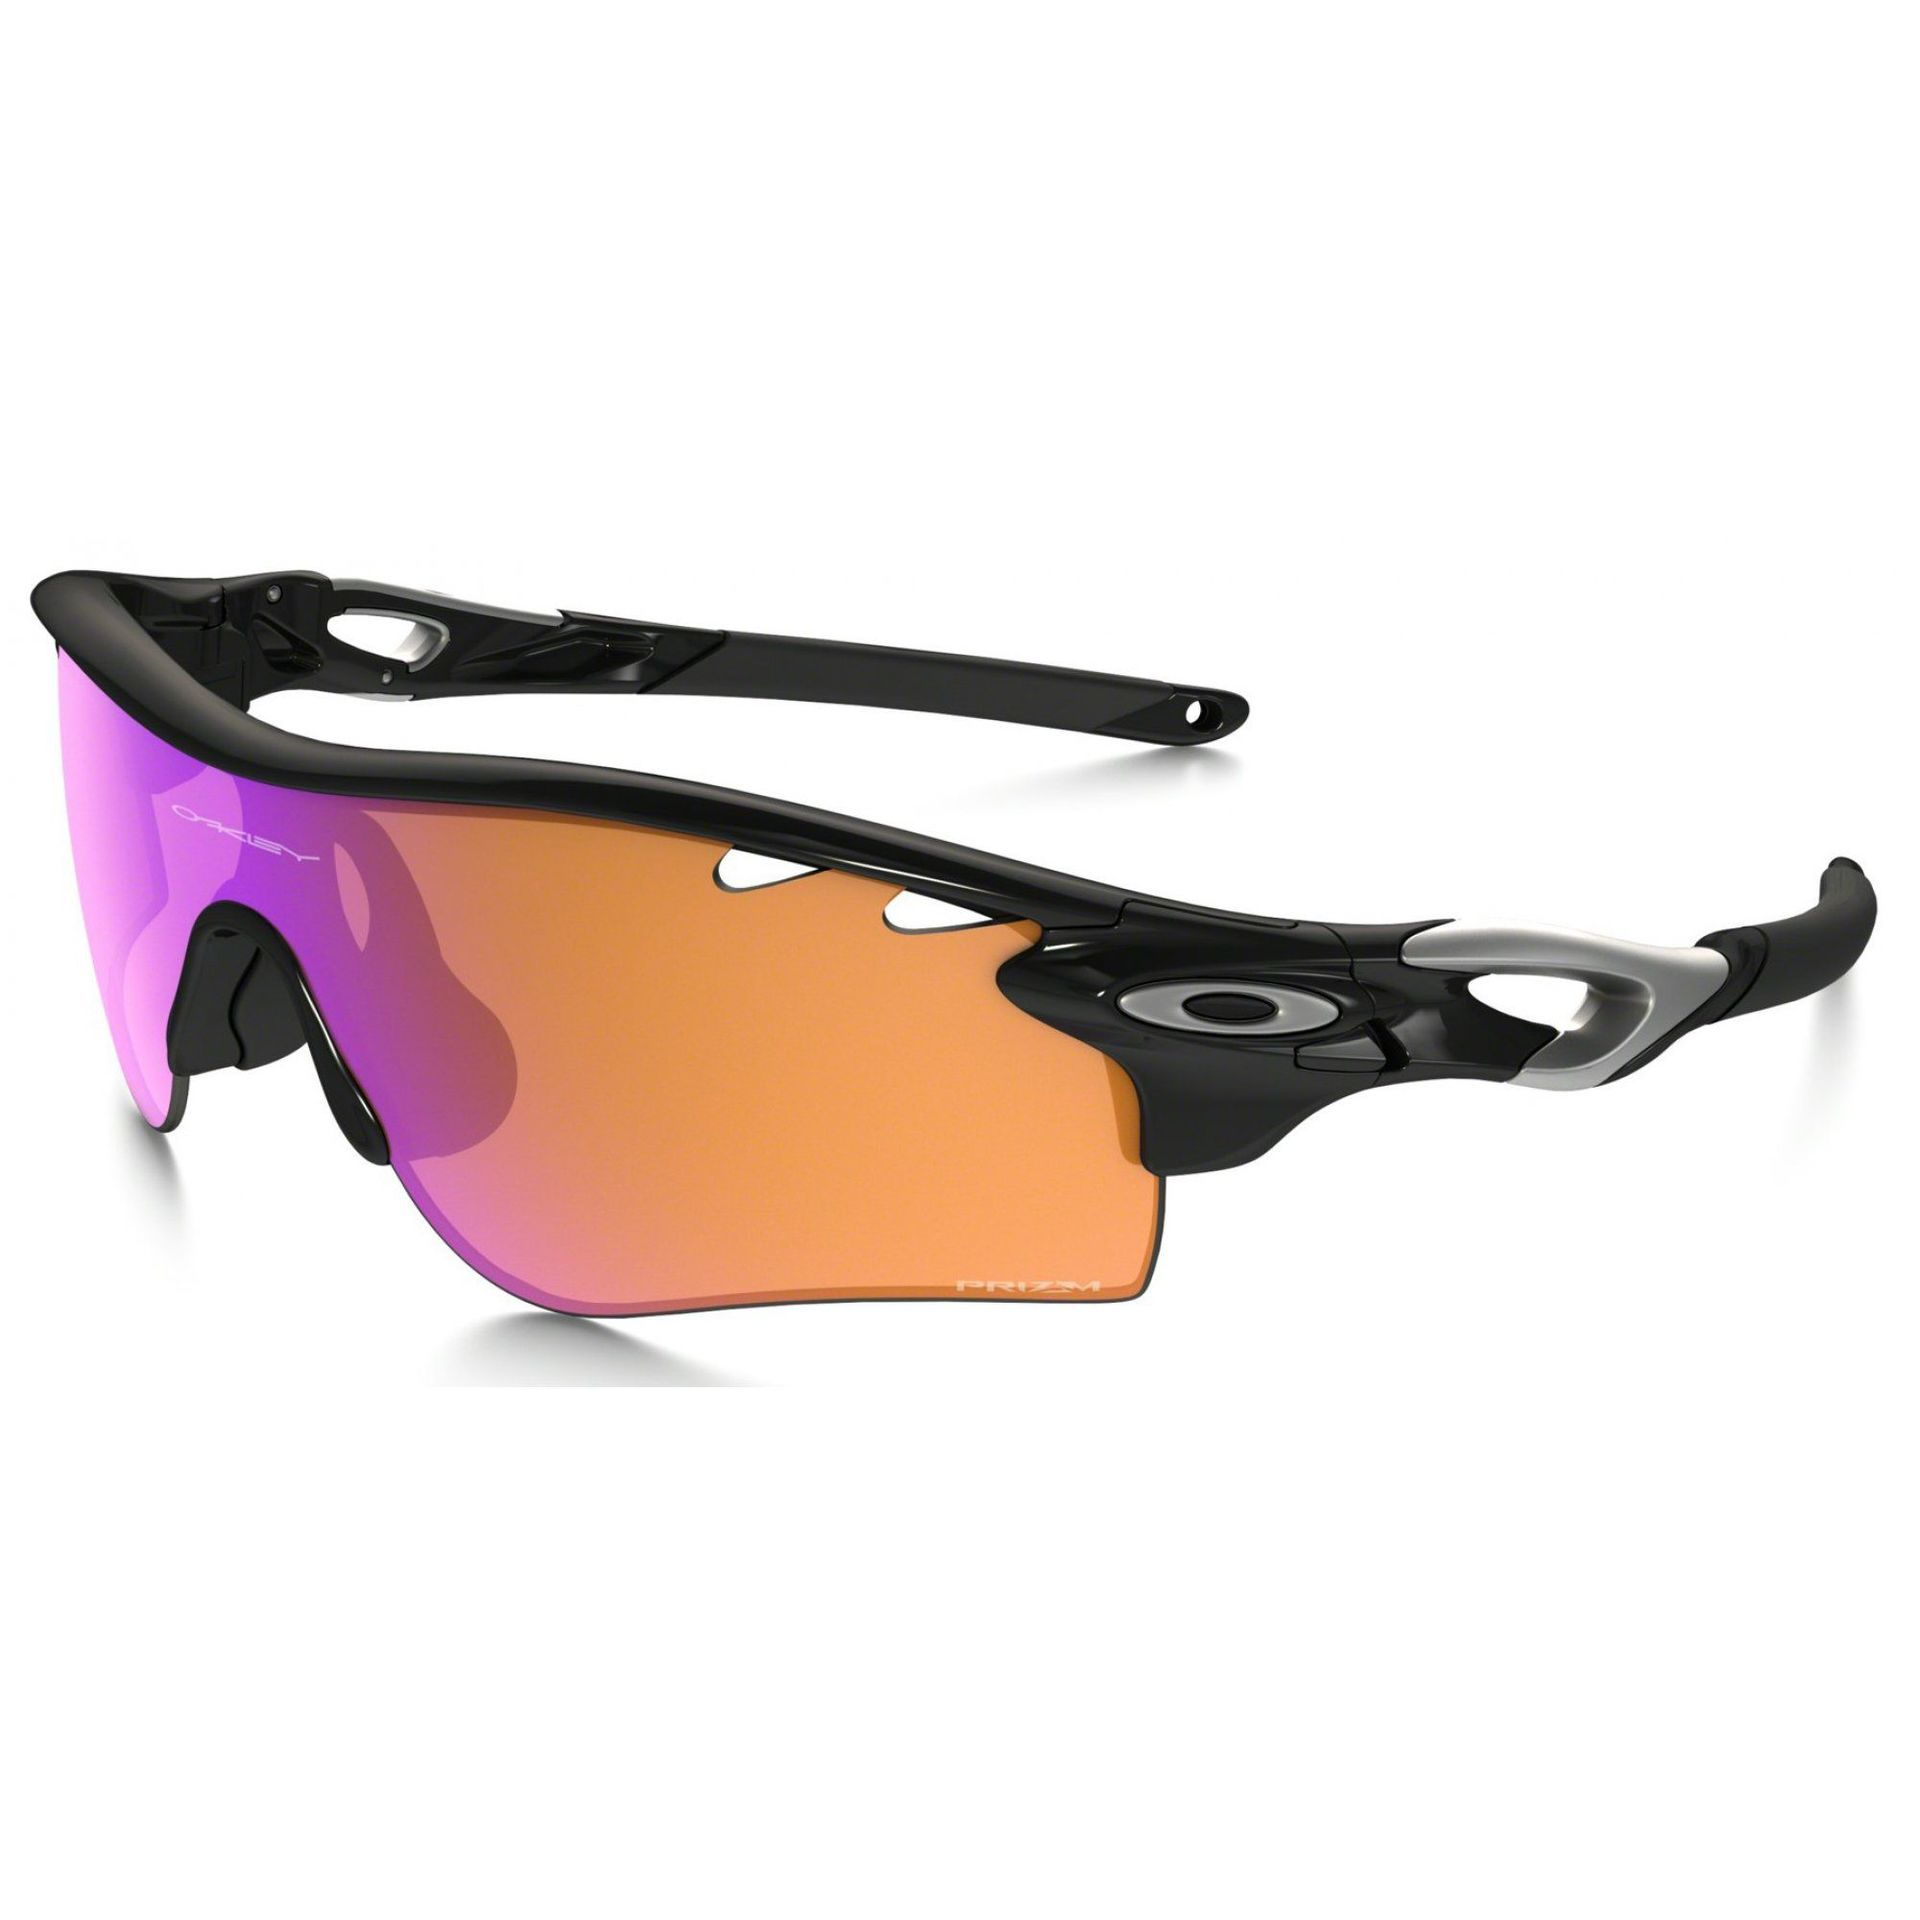 OKULARY OAKLEY RADARLOCK 2017 POLISHED BLACK I